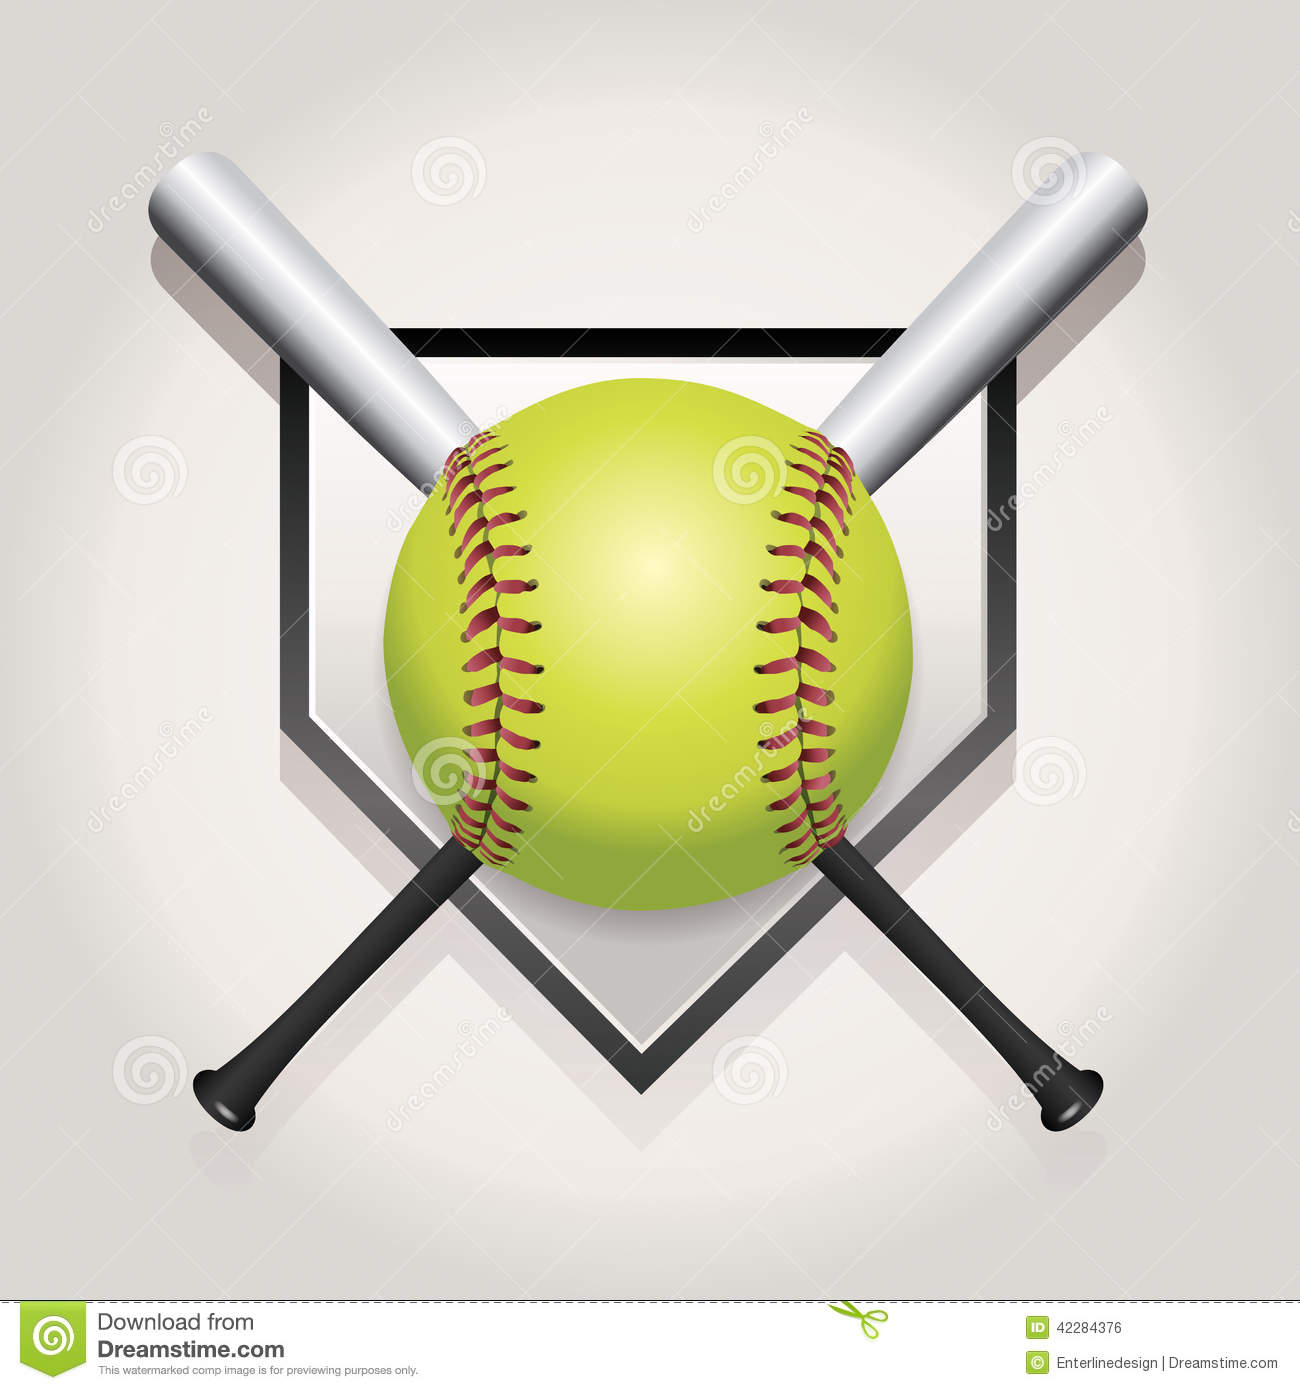 Softball, Bat, And Homeplate Emblem Illustration Stock Vector - Image ...